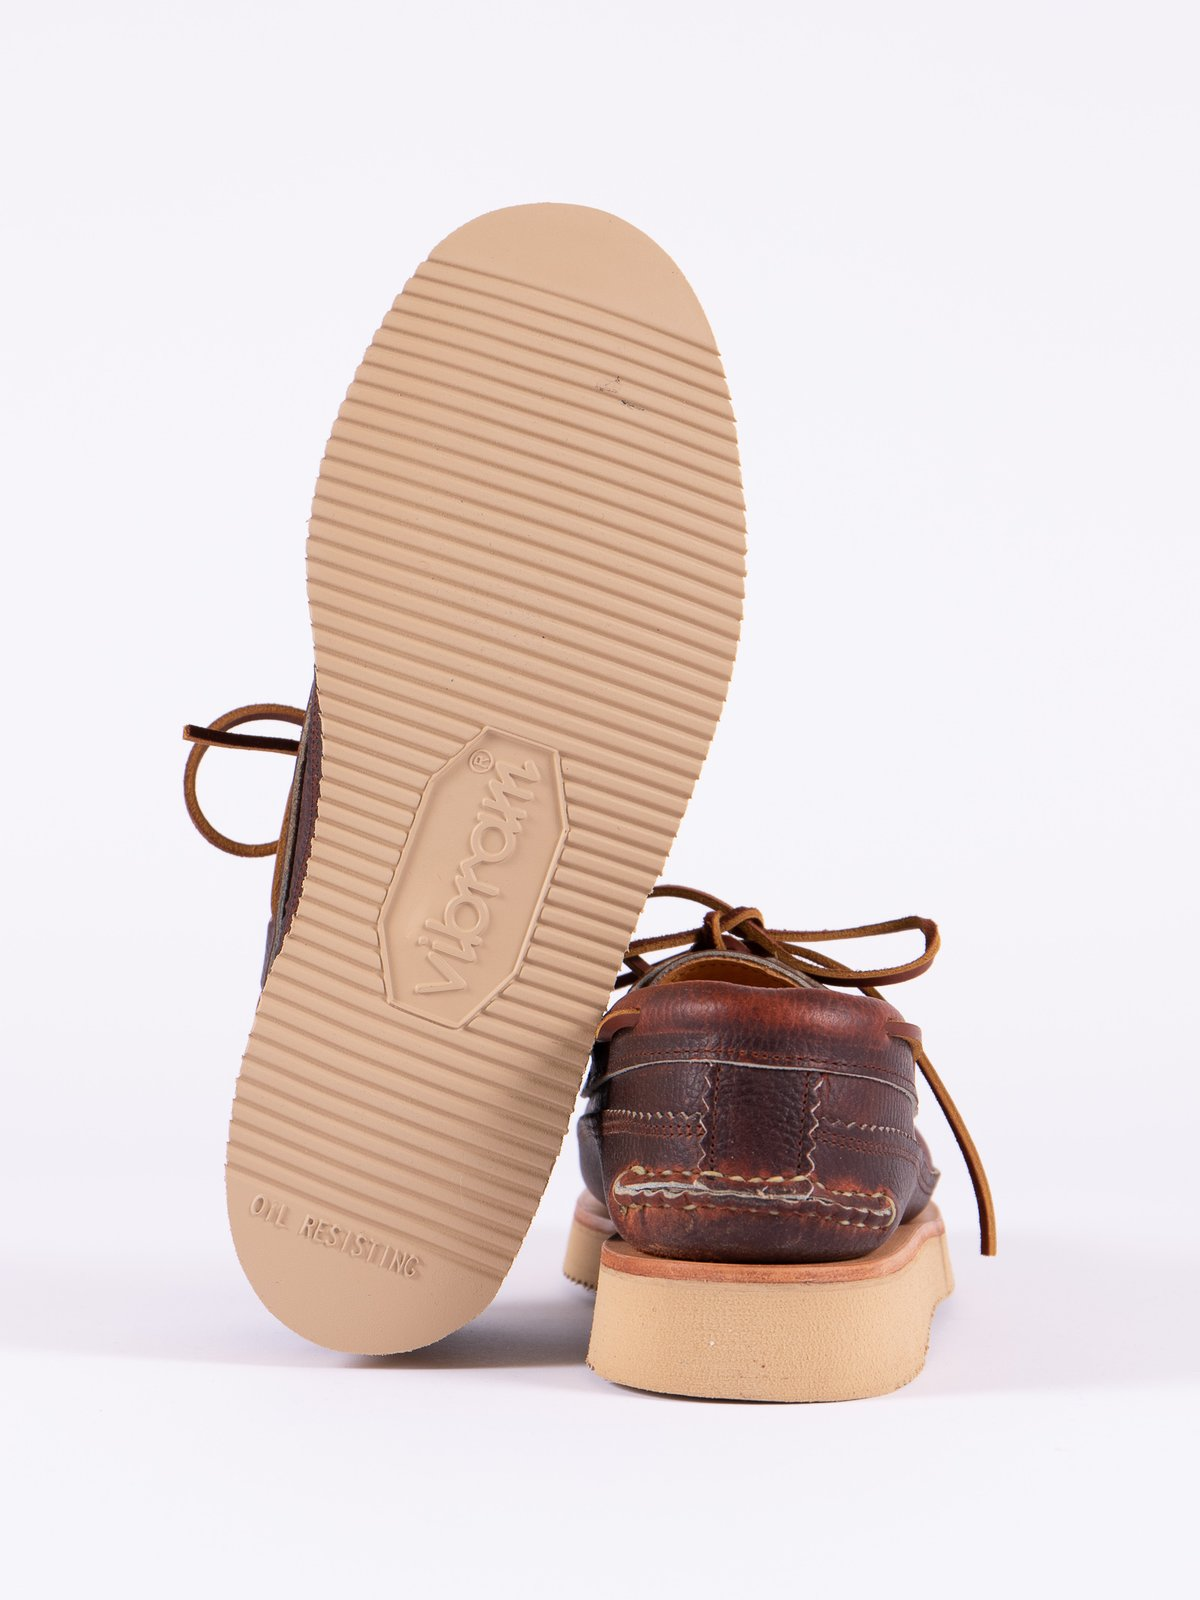 Chromepak Brown Boat Shoe Exclusive - Image 5